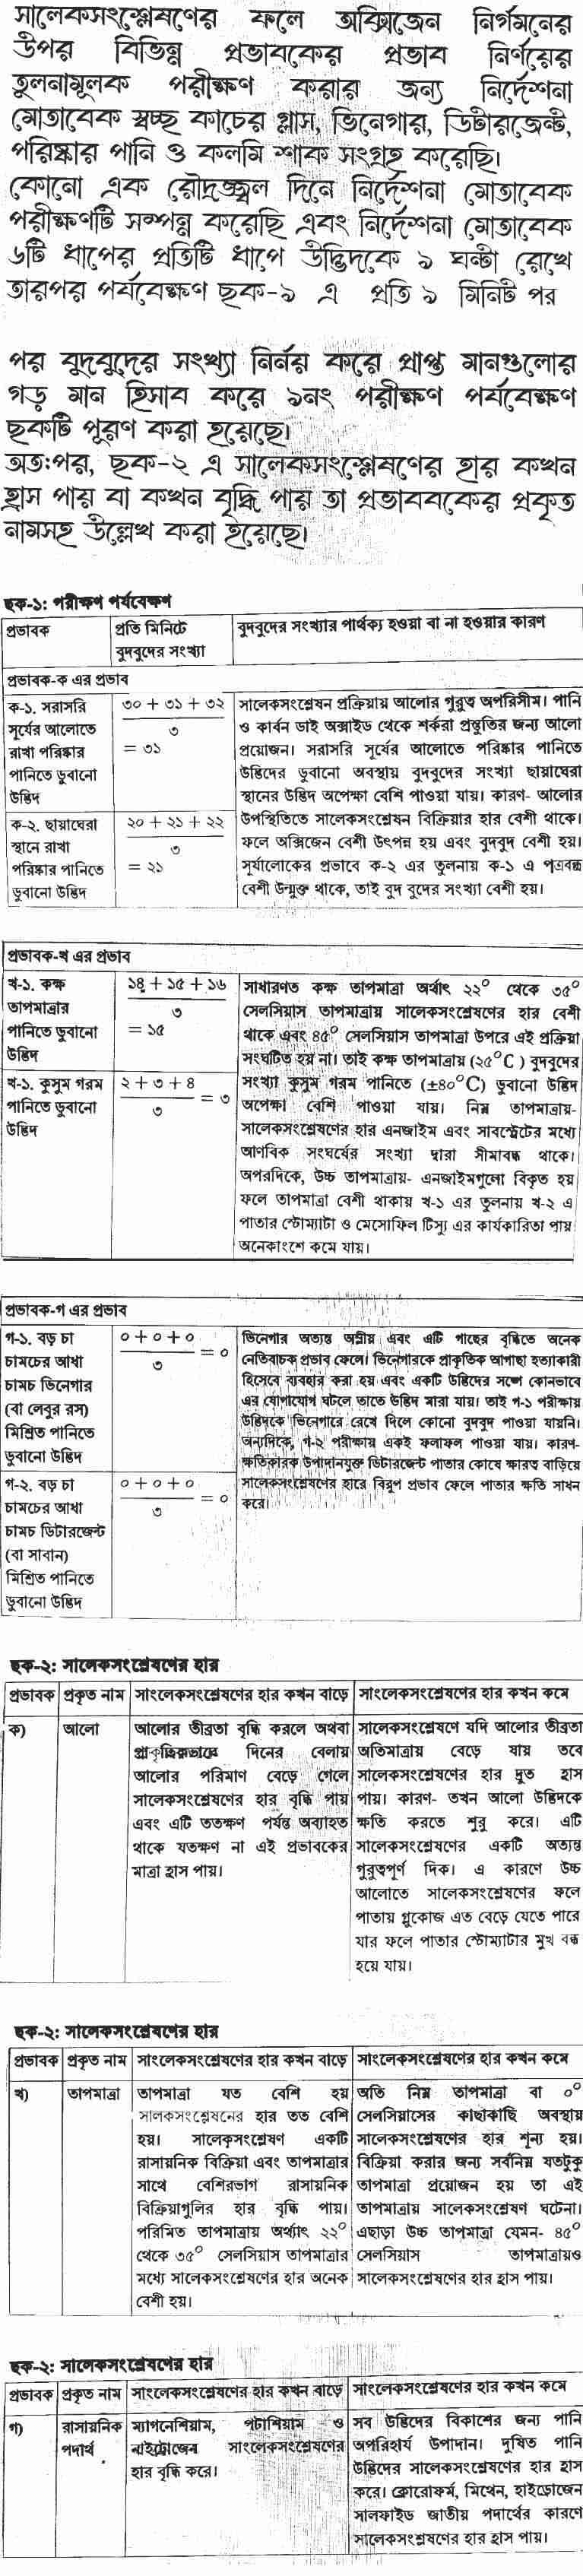 Exam 2021 Biology SSC 4th Week Assignment with Answer